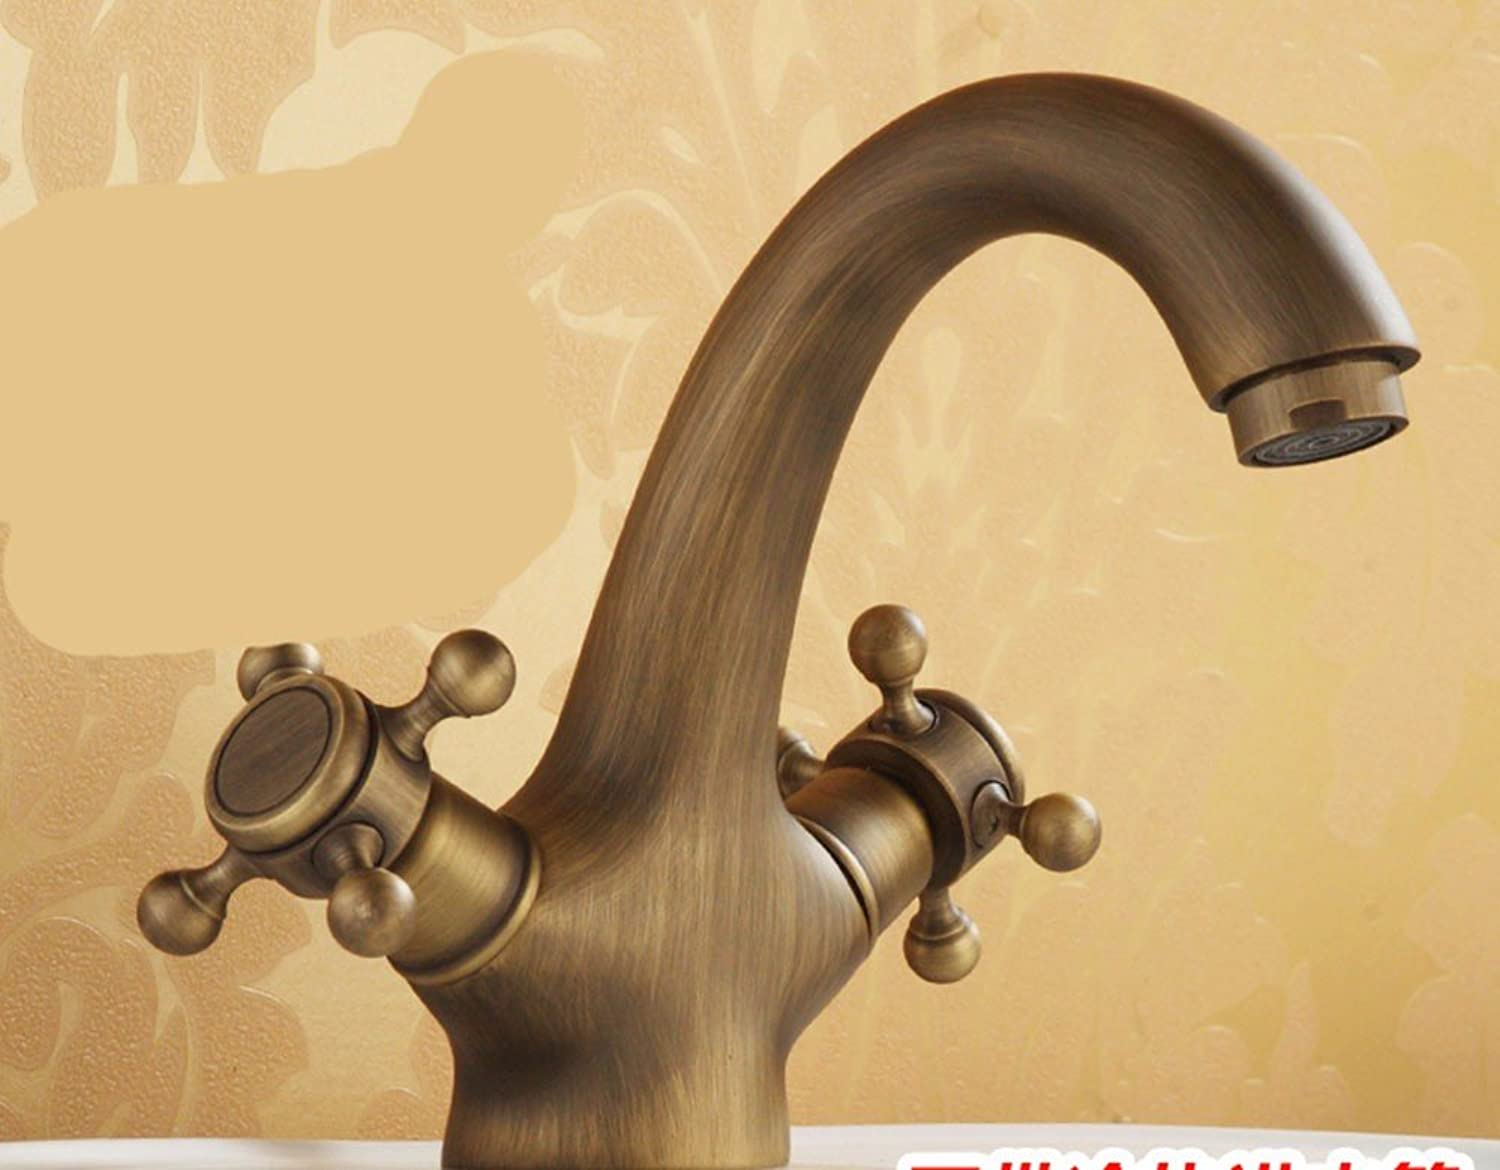 Hlluya Professional Sink Mixer Tap Kitchen Faucet Copper, bathrooms, hot and cold, washbasin, taps, 6